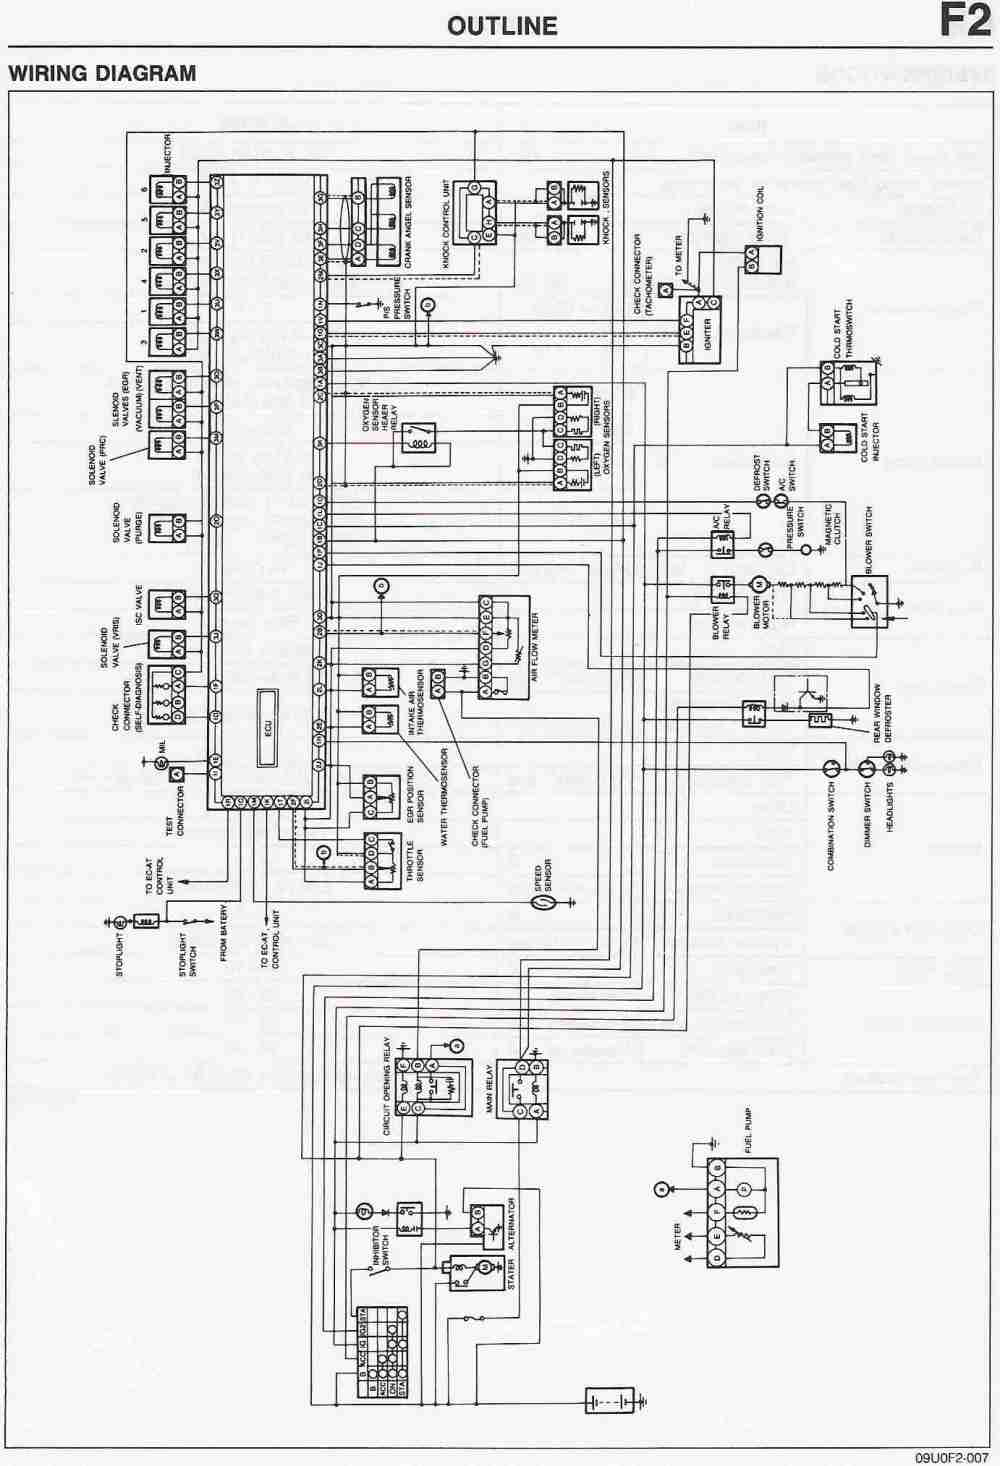 medium resolution of mazda luce wiring diagram wiring diagram val 1993 mazda 929 engine diagram wiring diagram show mazda